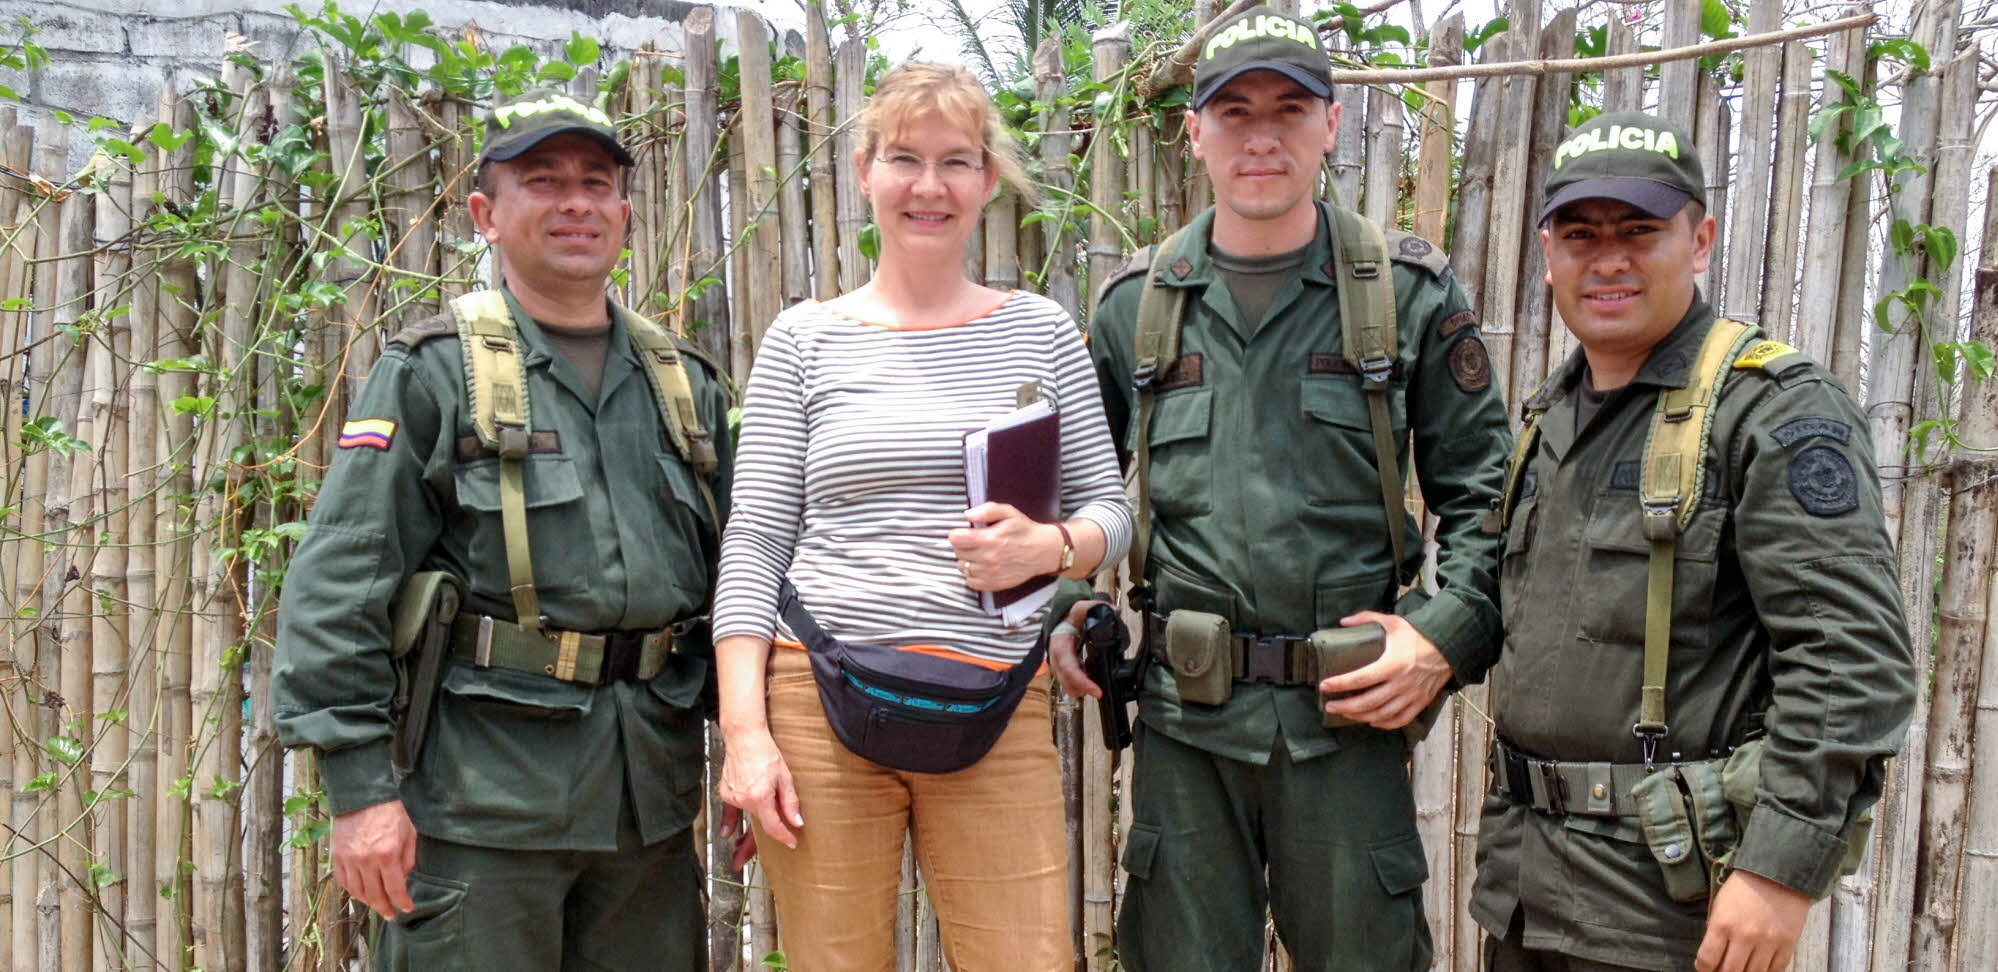 Manuela Nilsson with police officers in Colombia